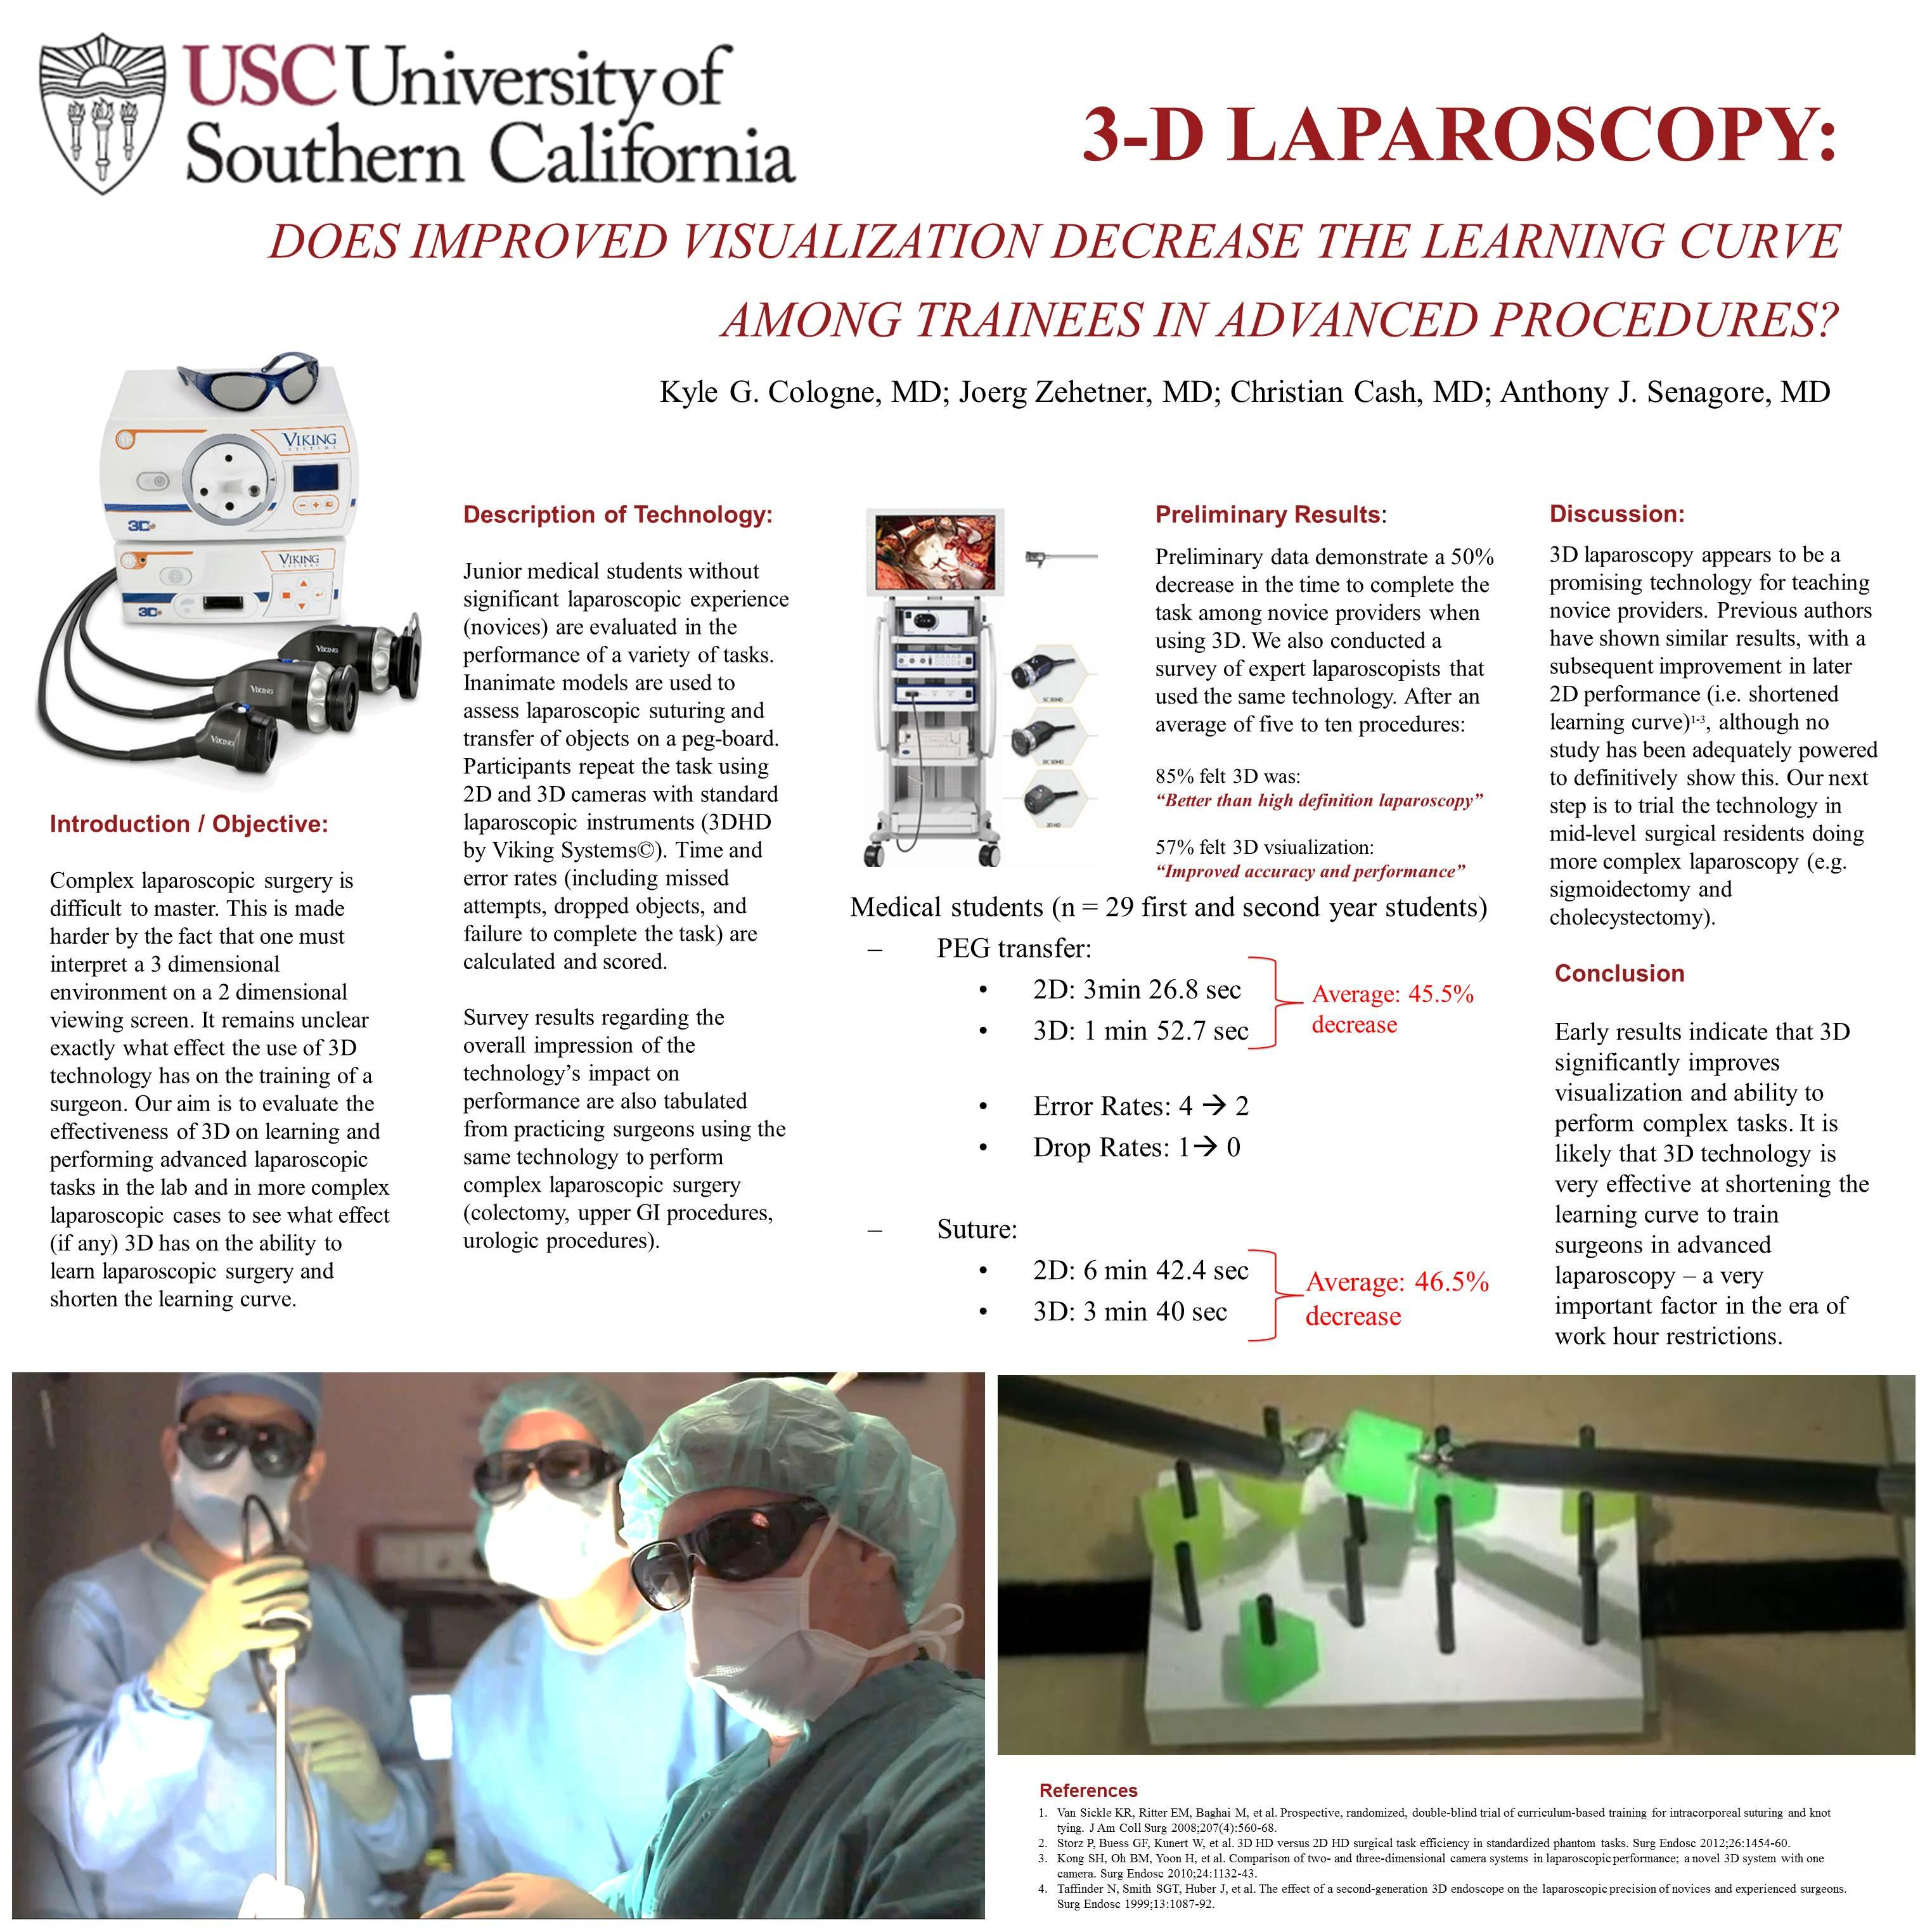 3D laparoscopy - does improved visualization decrease the learning